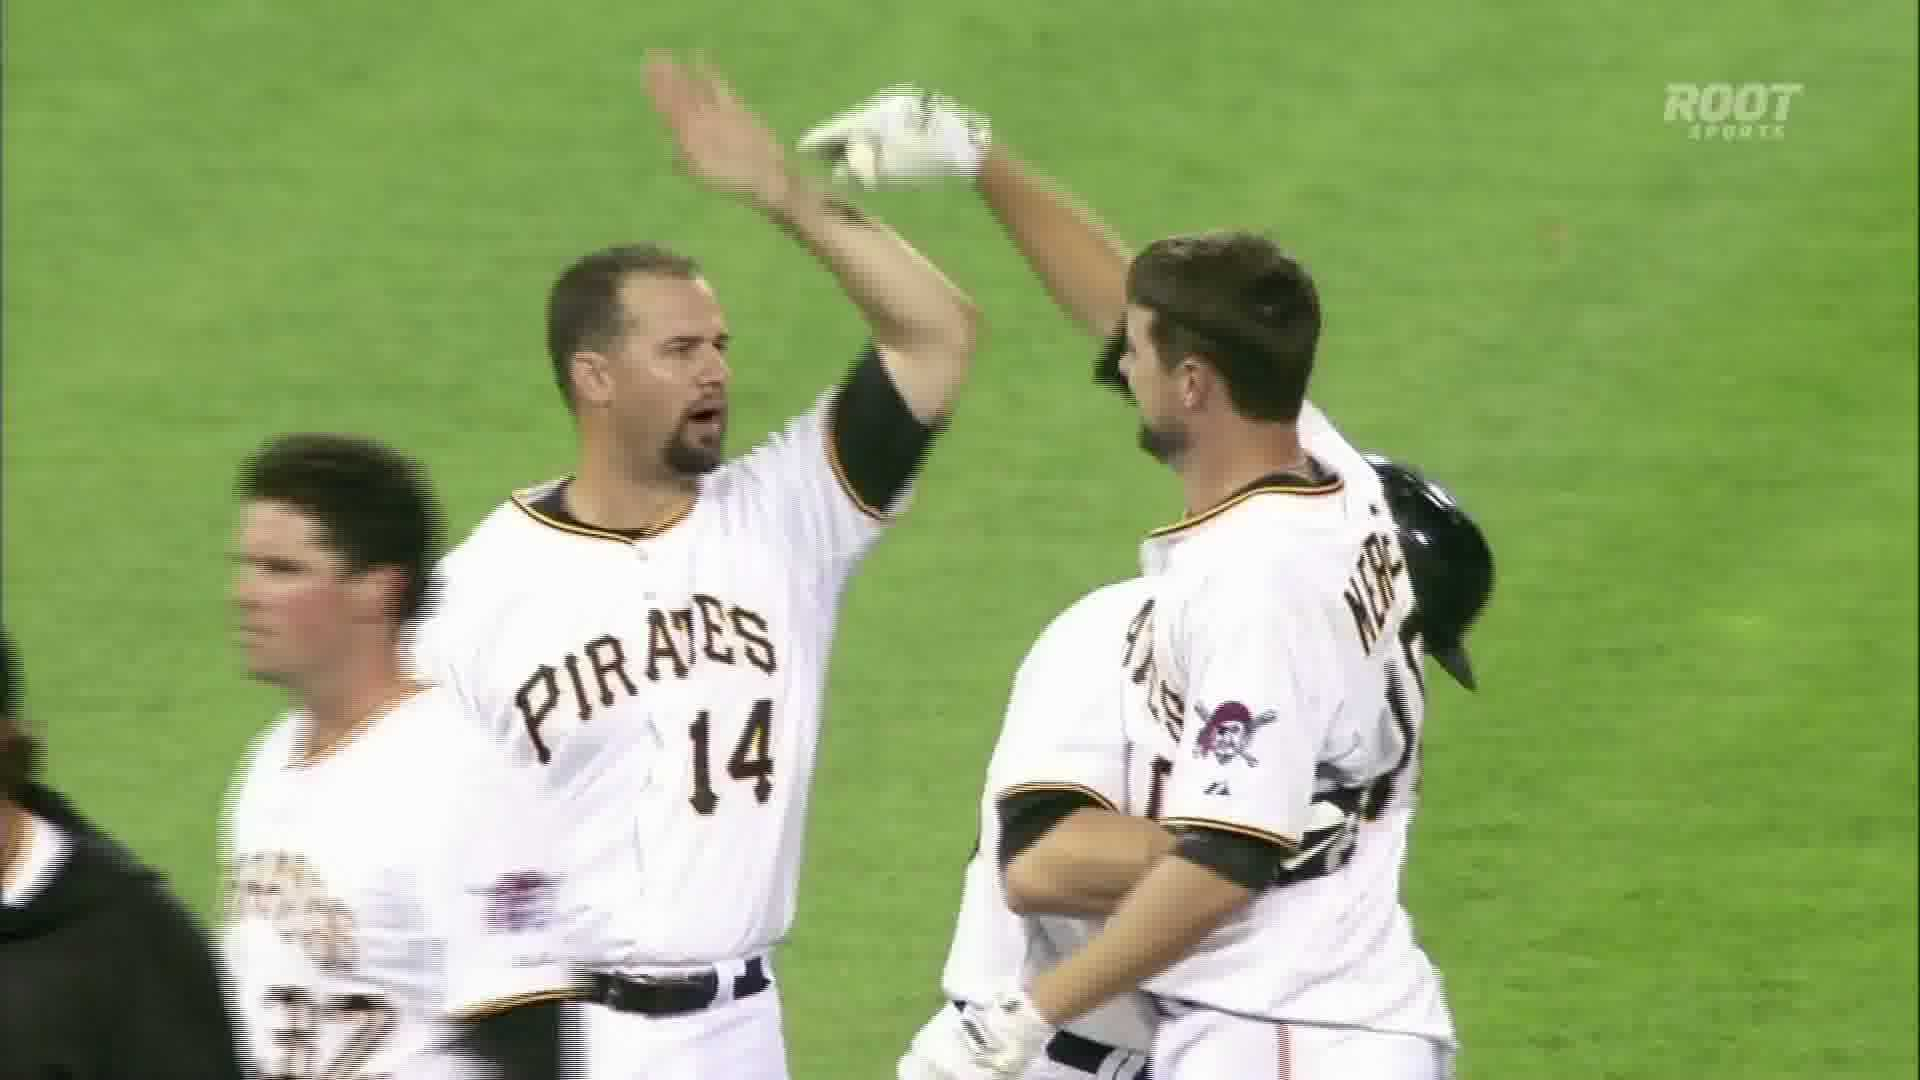 Jordy Mercer celebrates his 11th-inning RBI single, giving the Pirates a walk-off win.